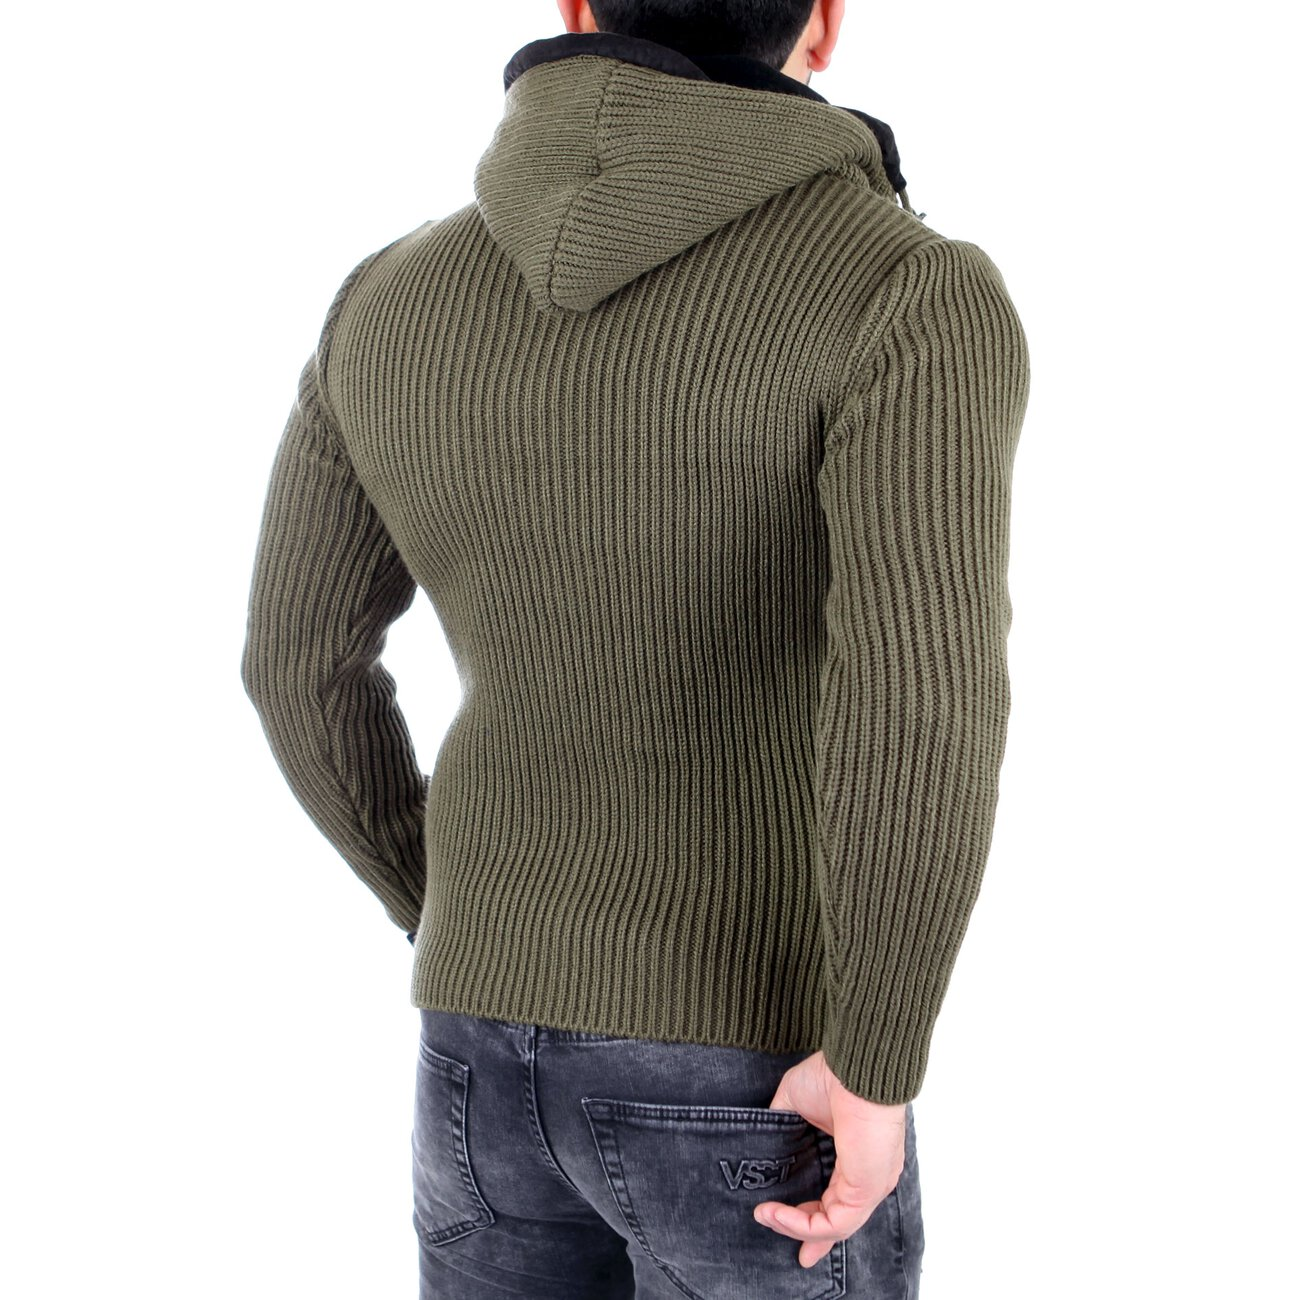 Pullover Männer Zalando Hoodies Pullovers Tz 4 148 467 Denonno Production